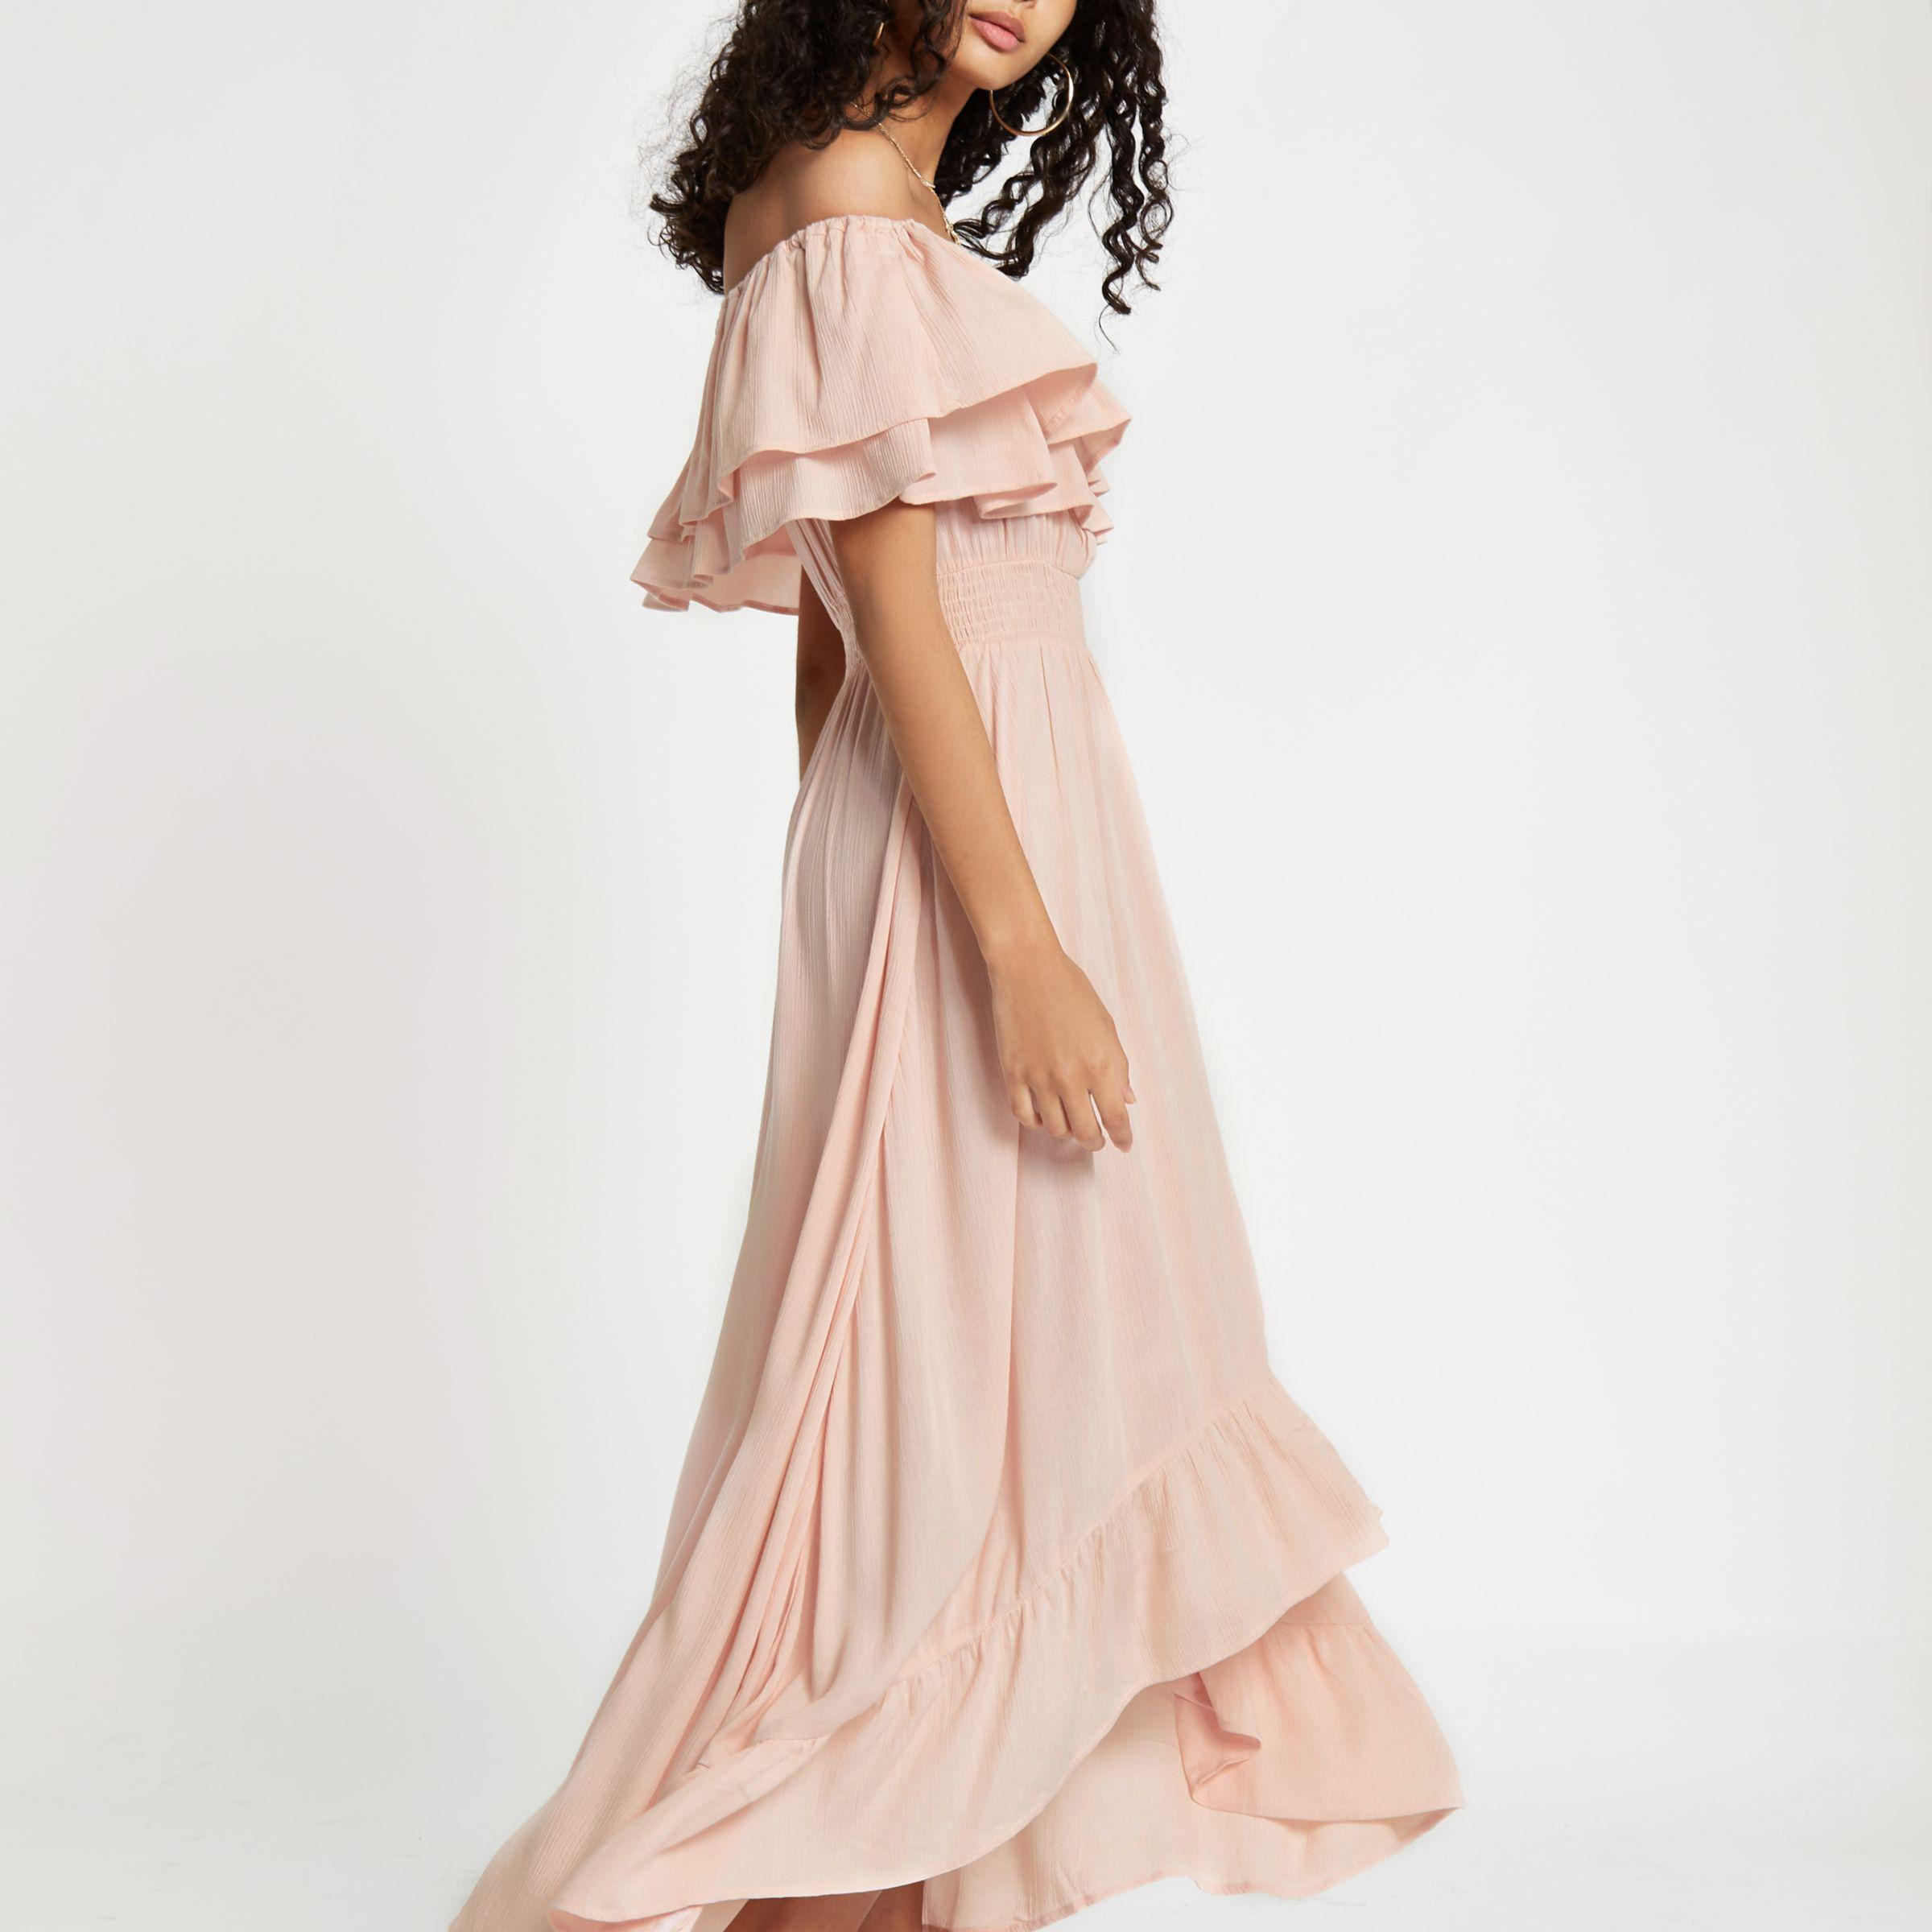 shoes for cheap uk store best selling River Island Synthetic Light Pink Frill Bardot Maxi Dress - Lyst